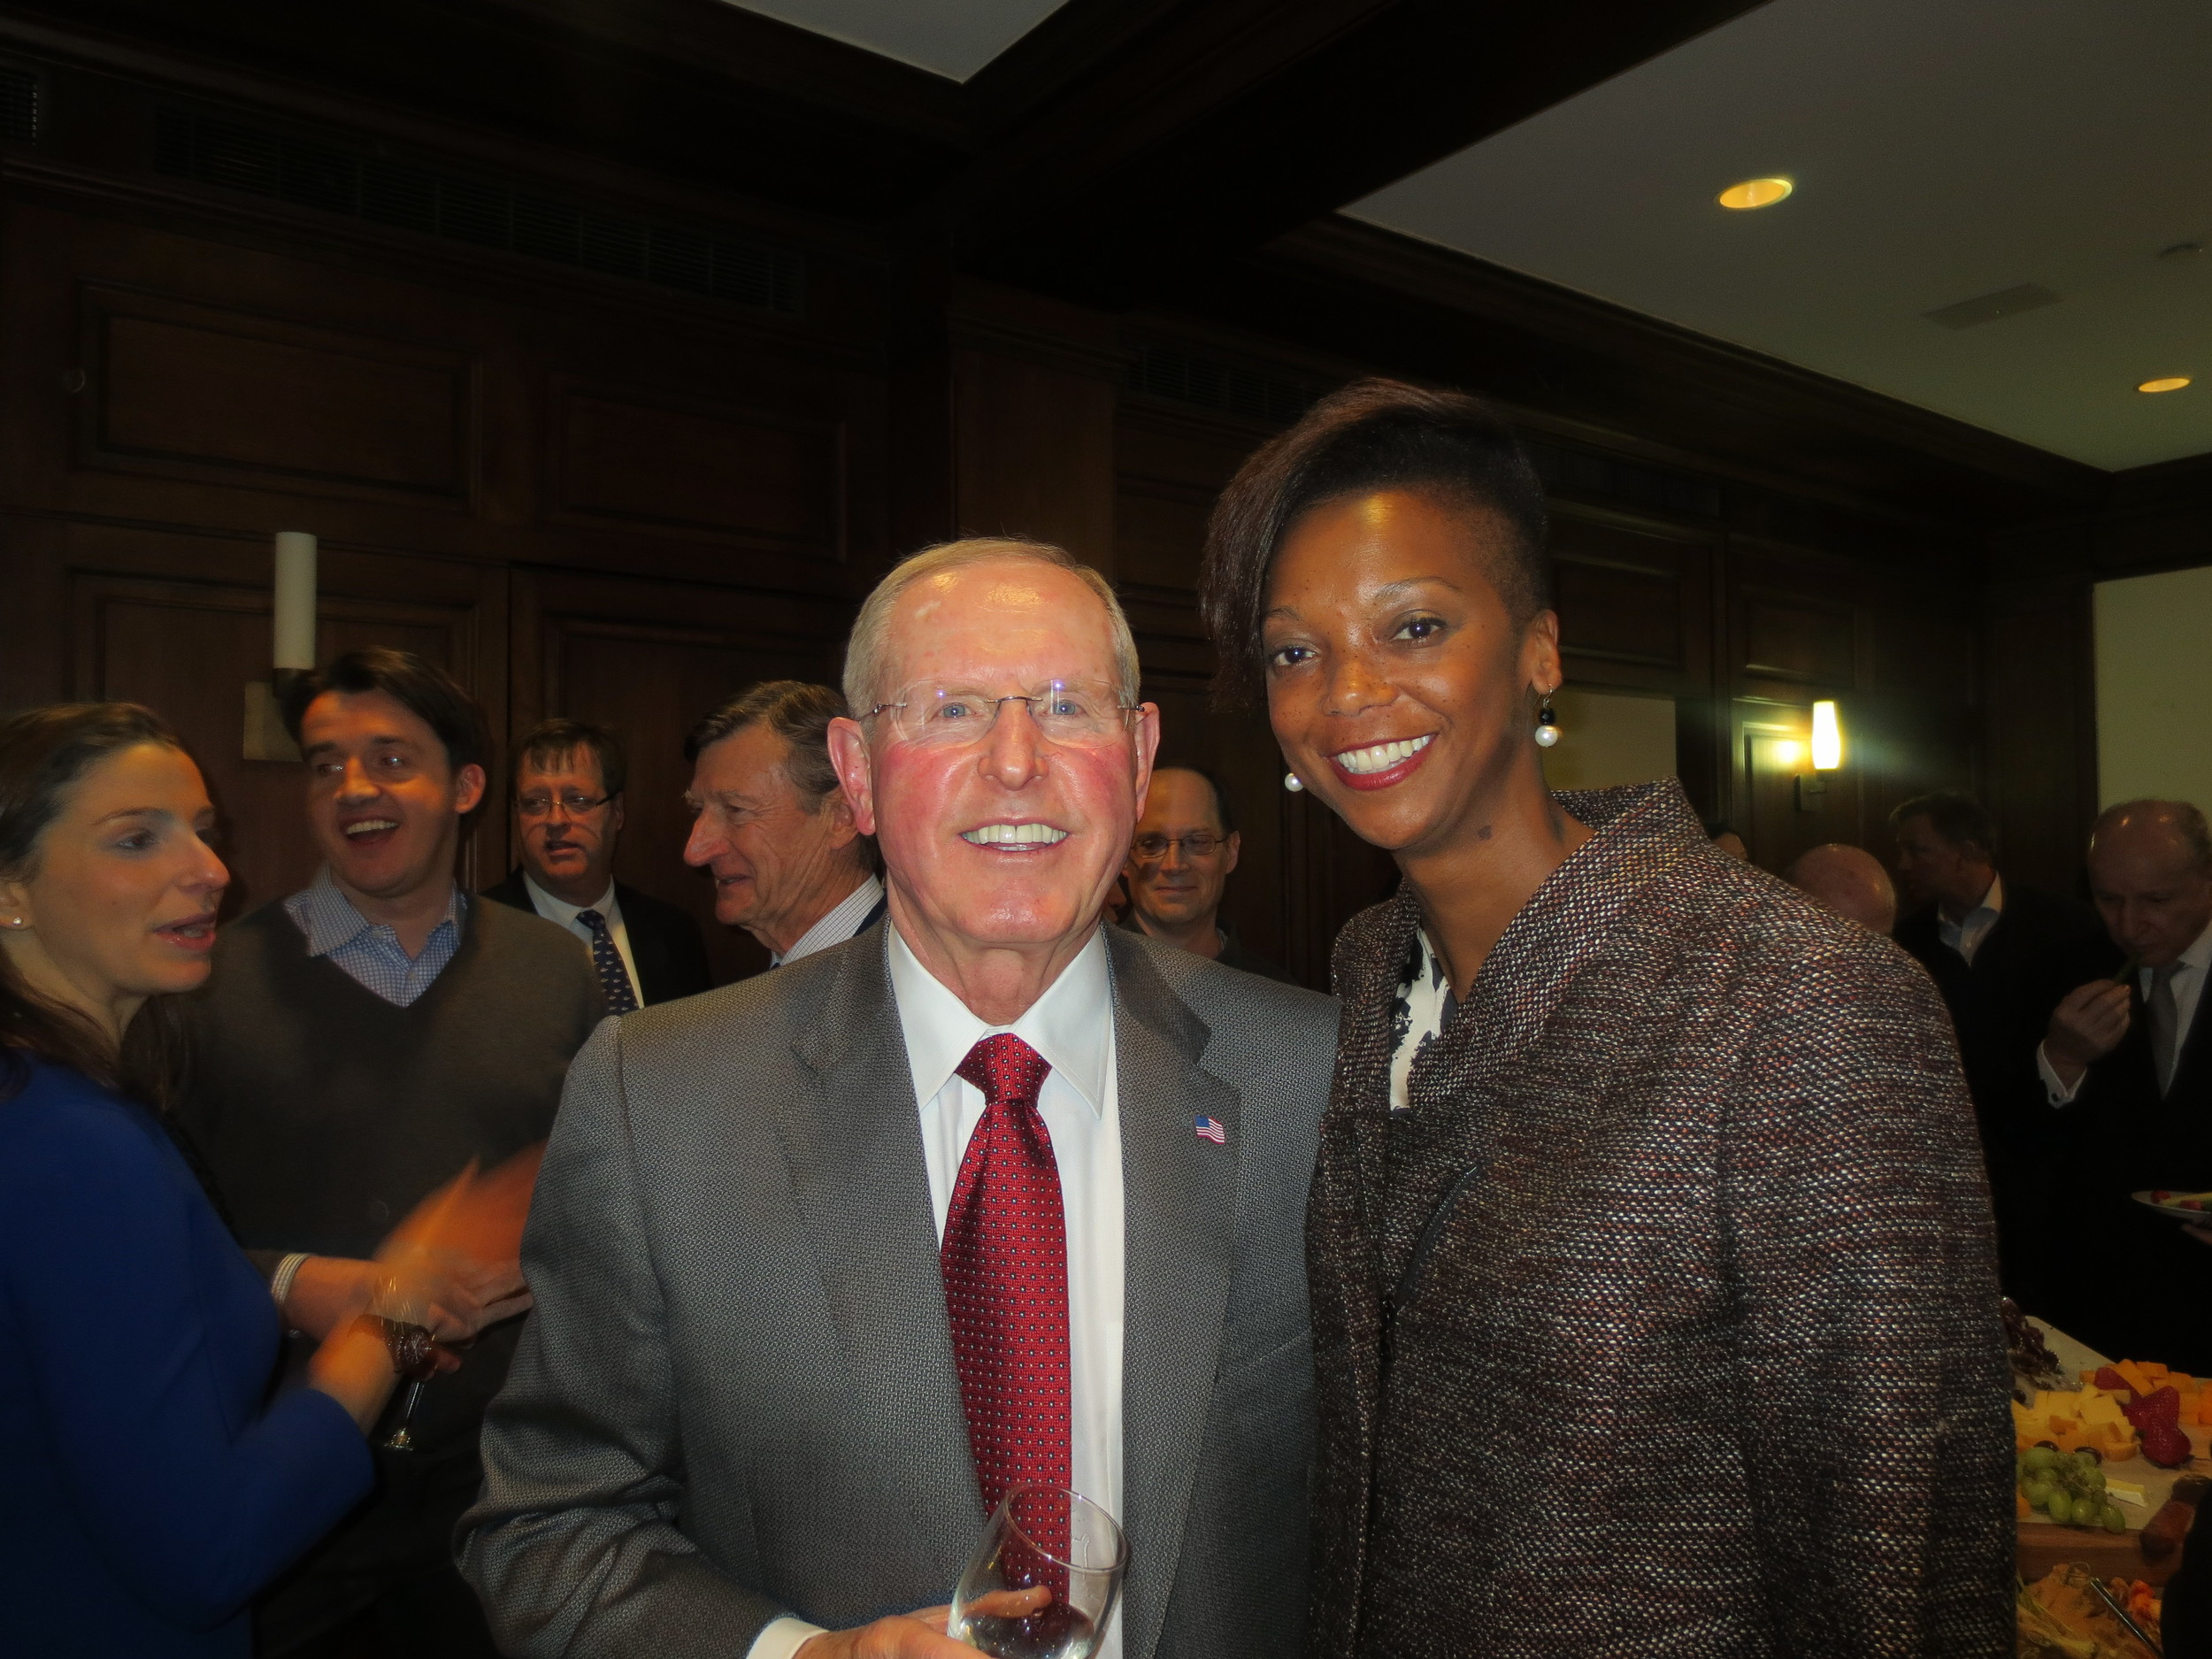 With the admirable Coach Coughlin